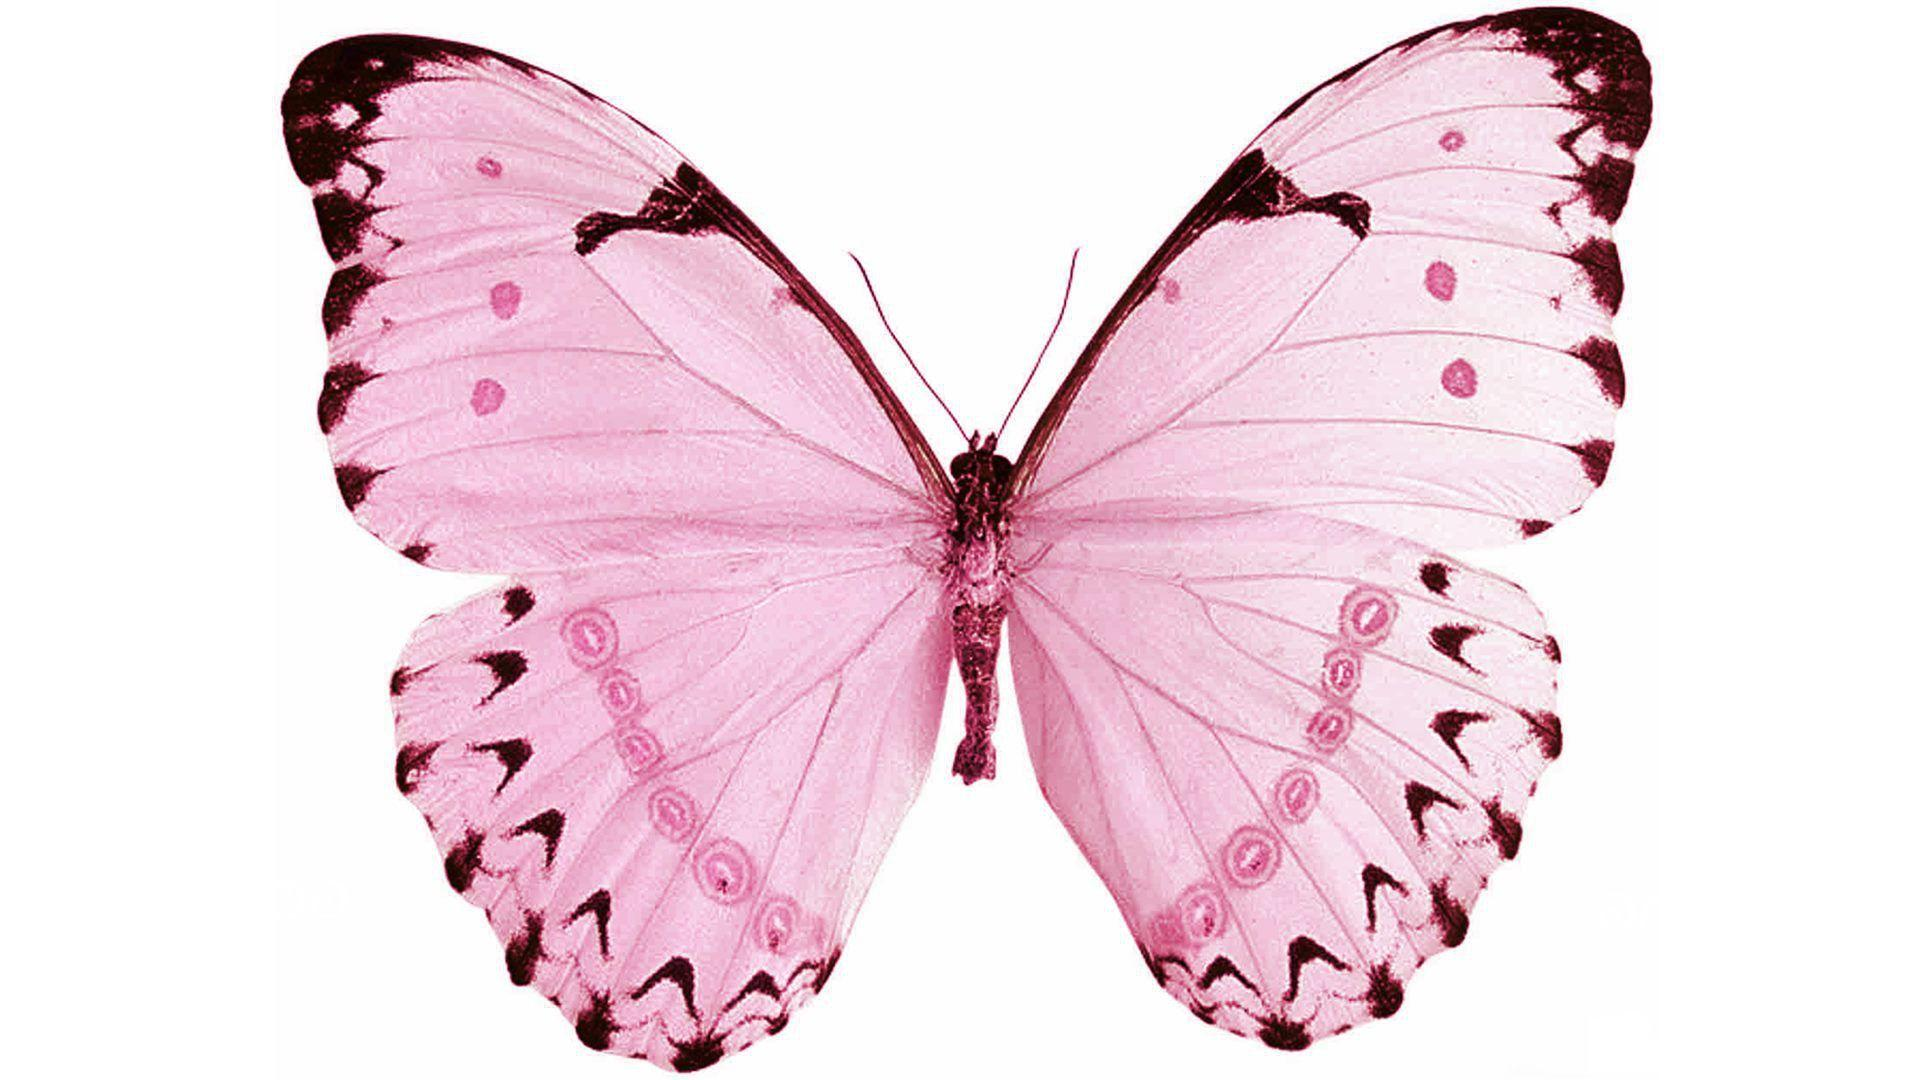 Wallpapers Butterfly Pink Backgrounds White - Wallpaper Cave